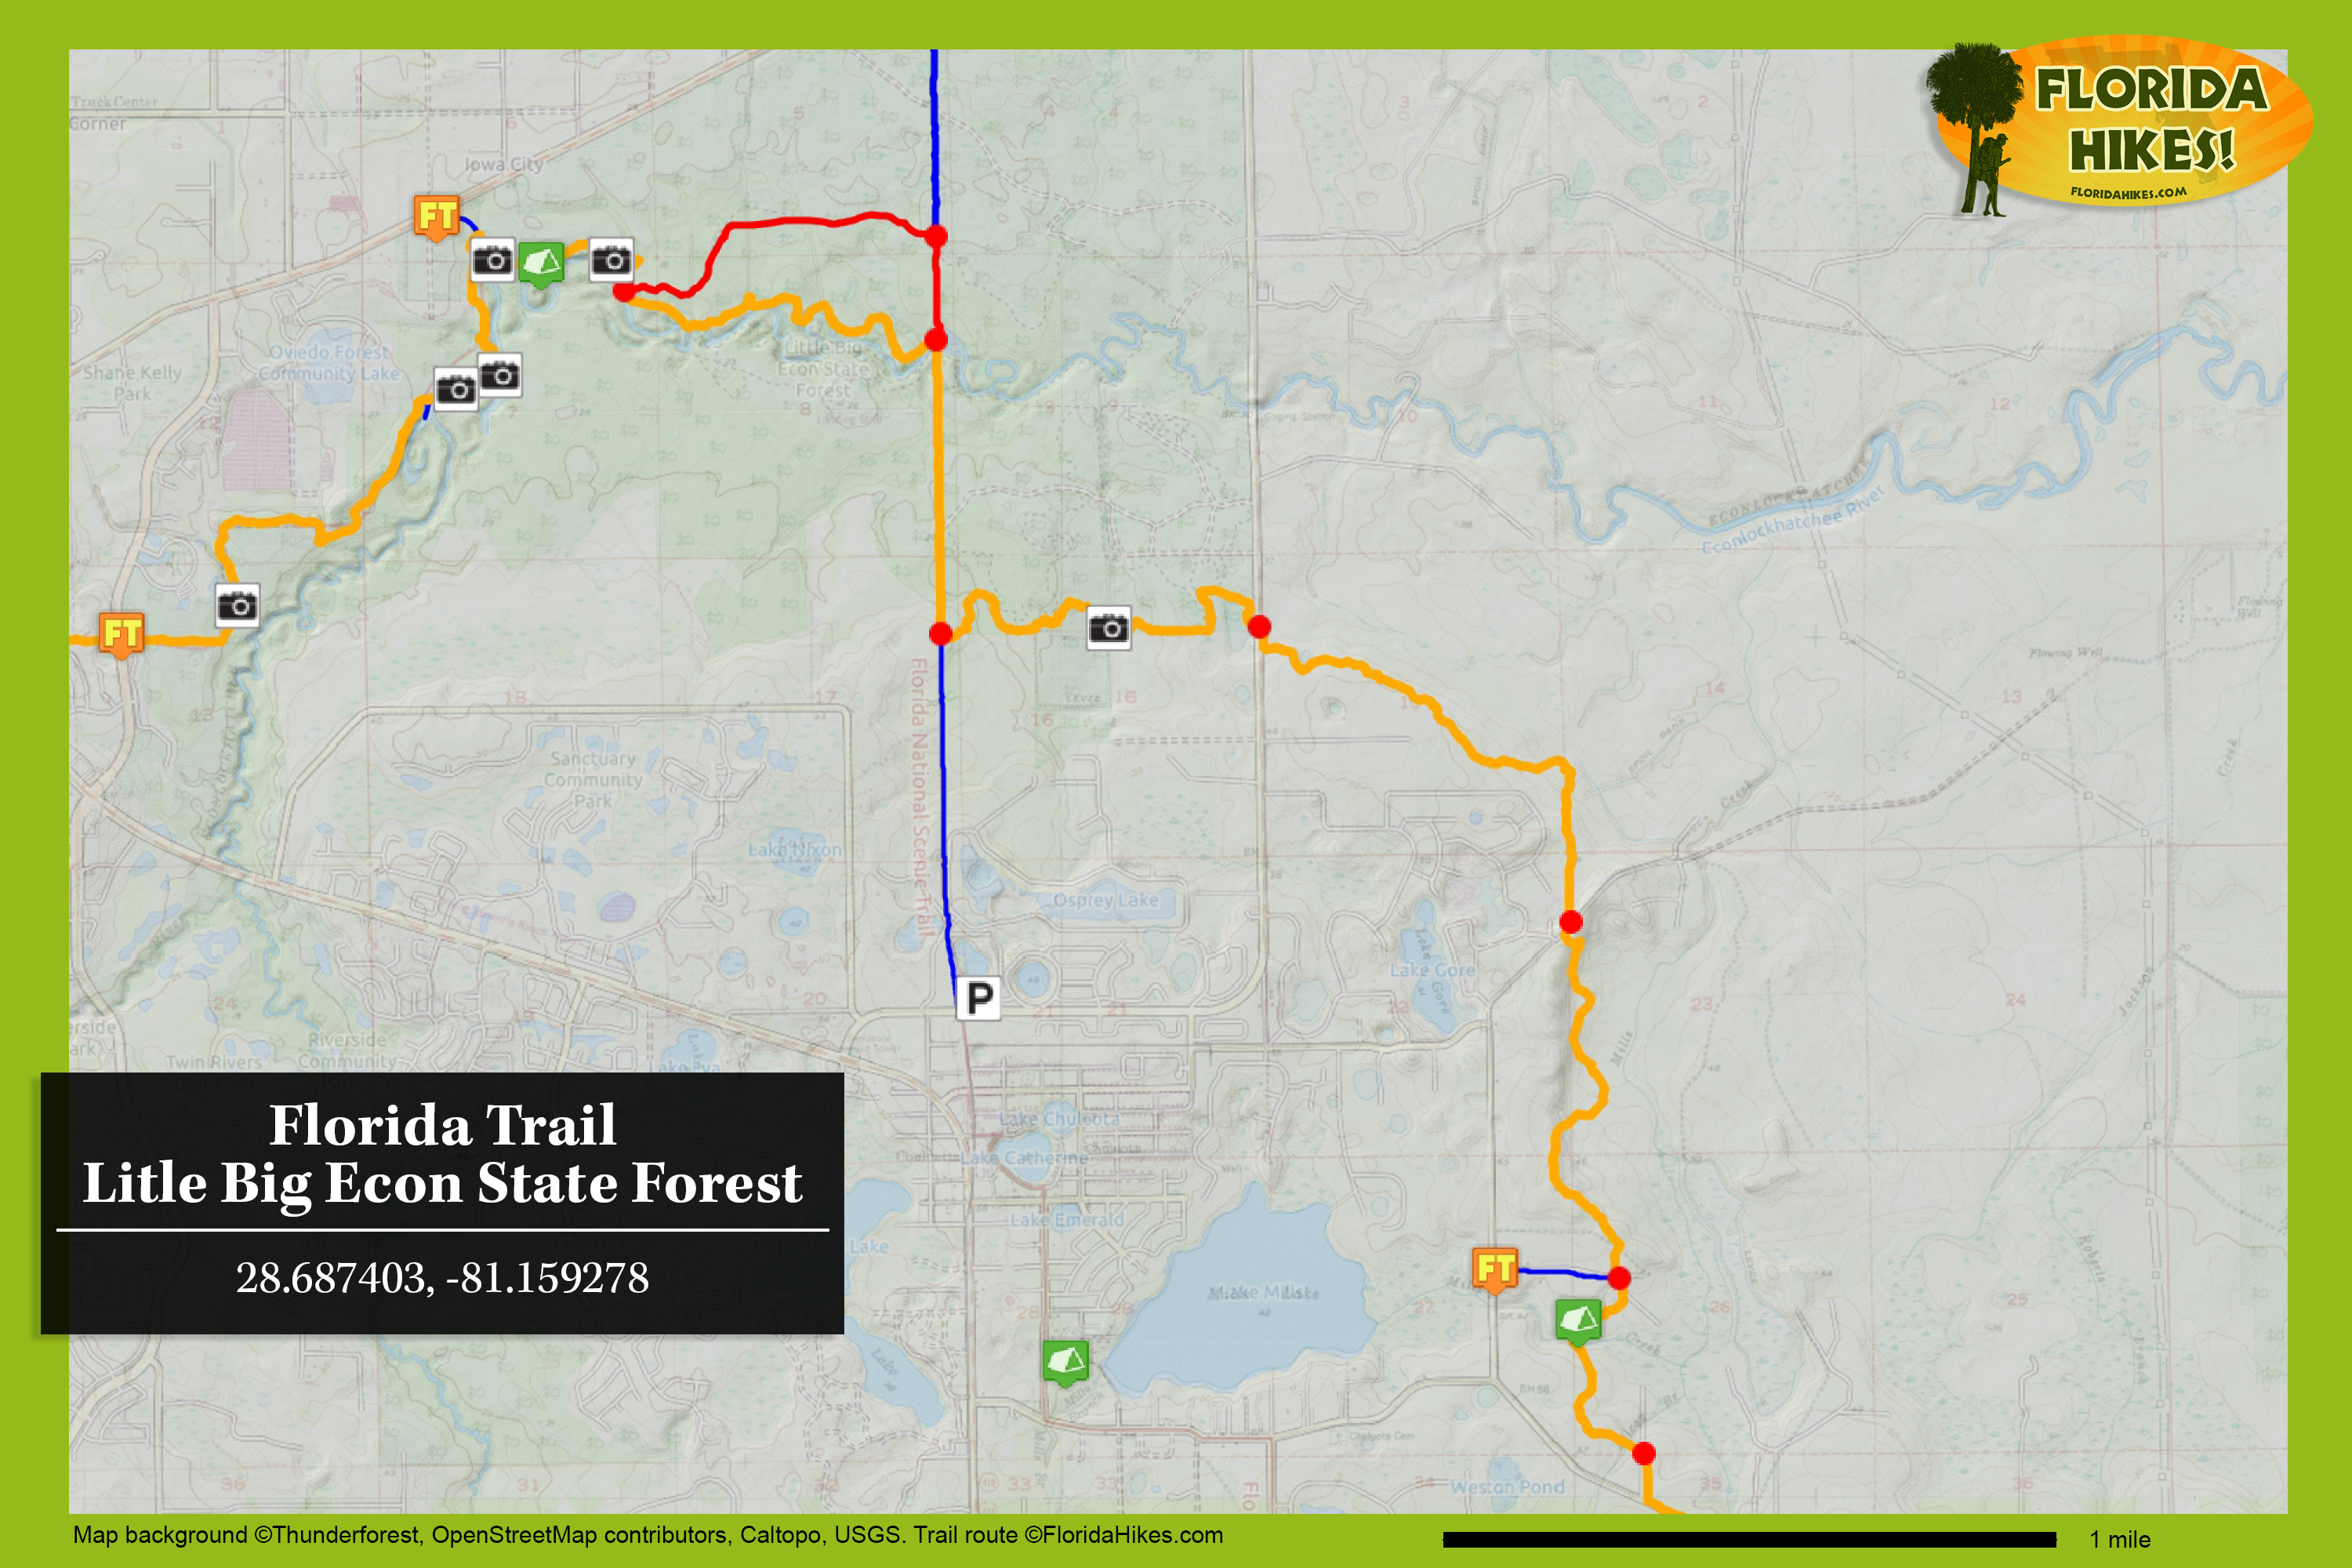 Florida Trail Little Big Econ State Forest Florida Hikes